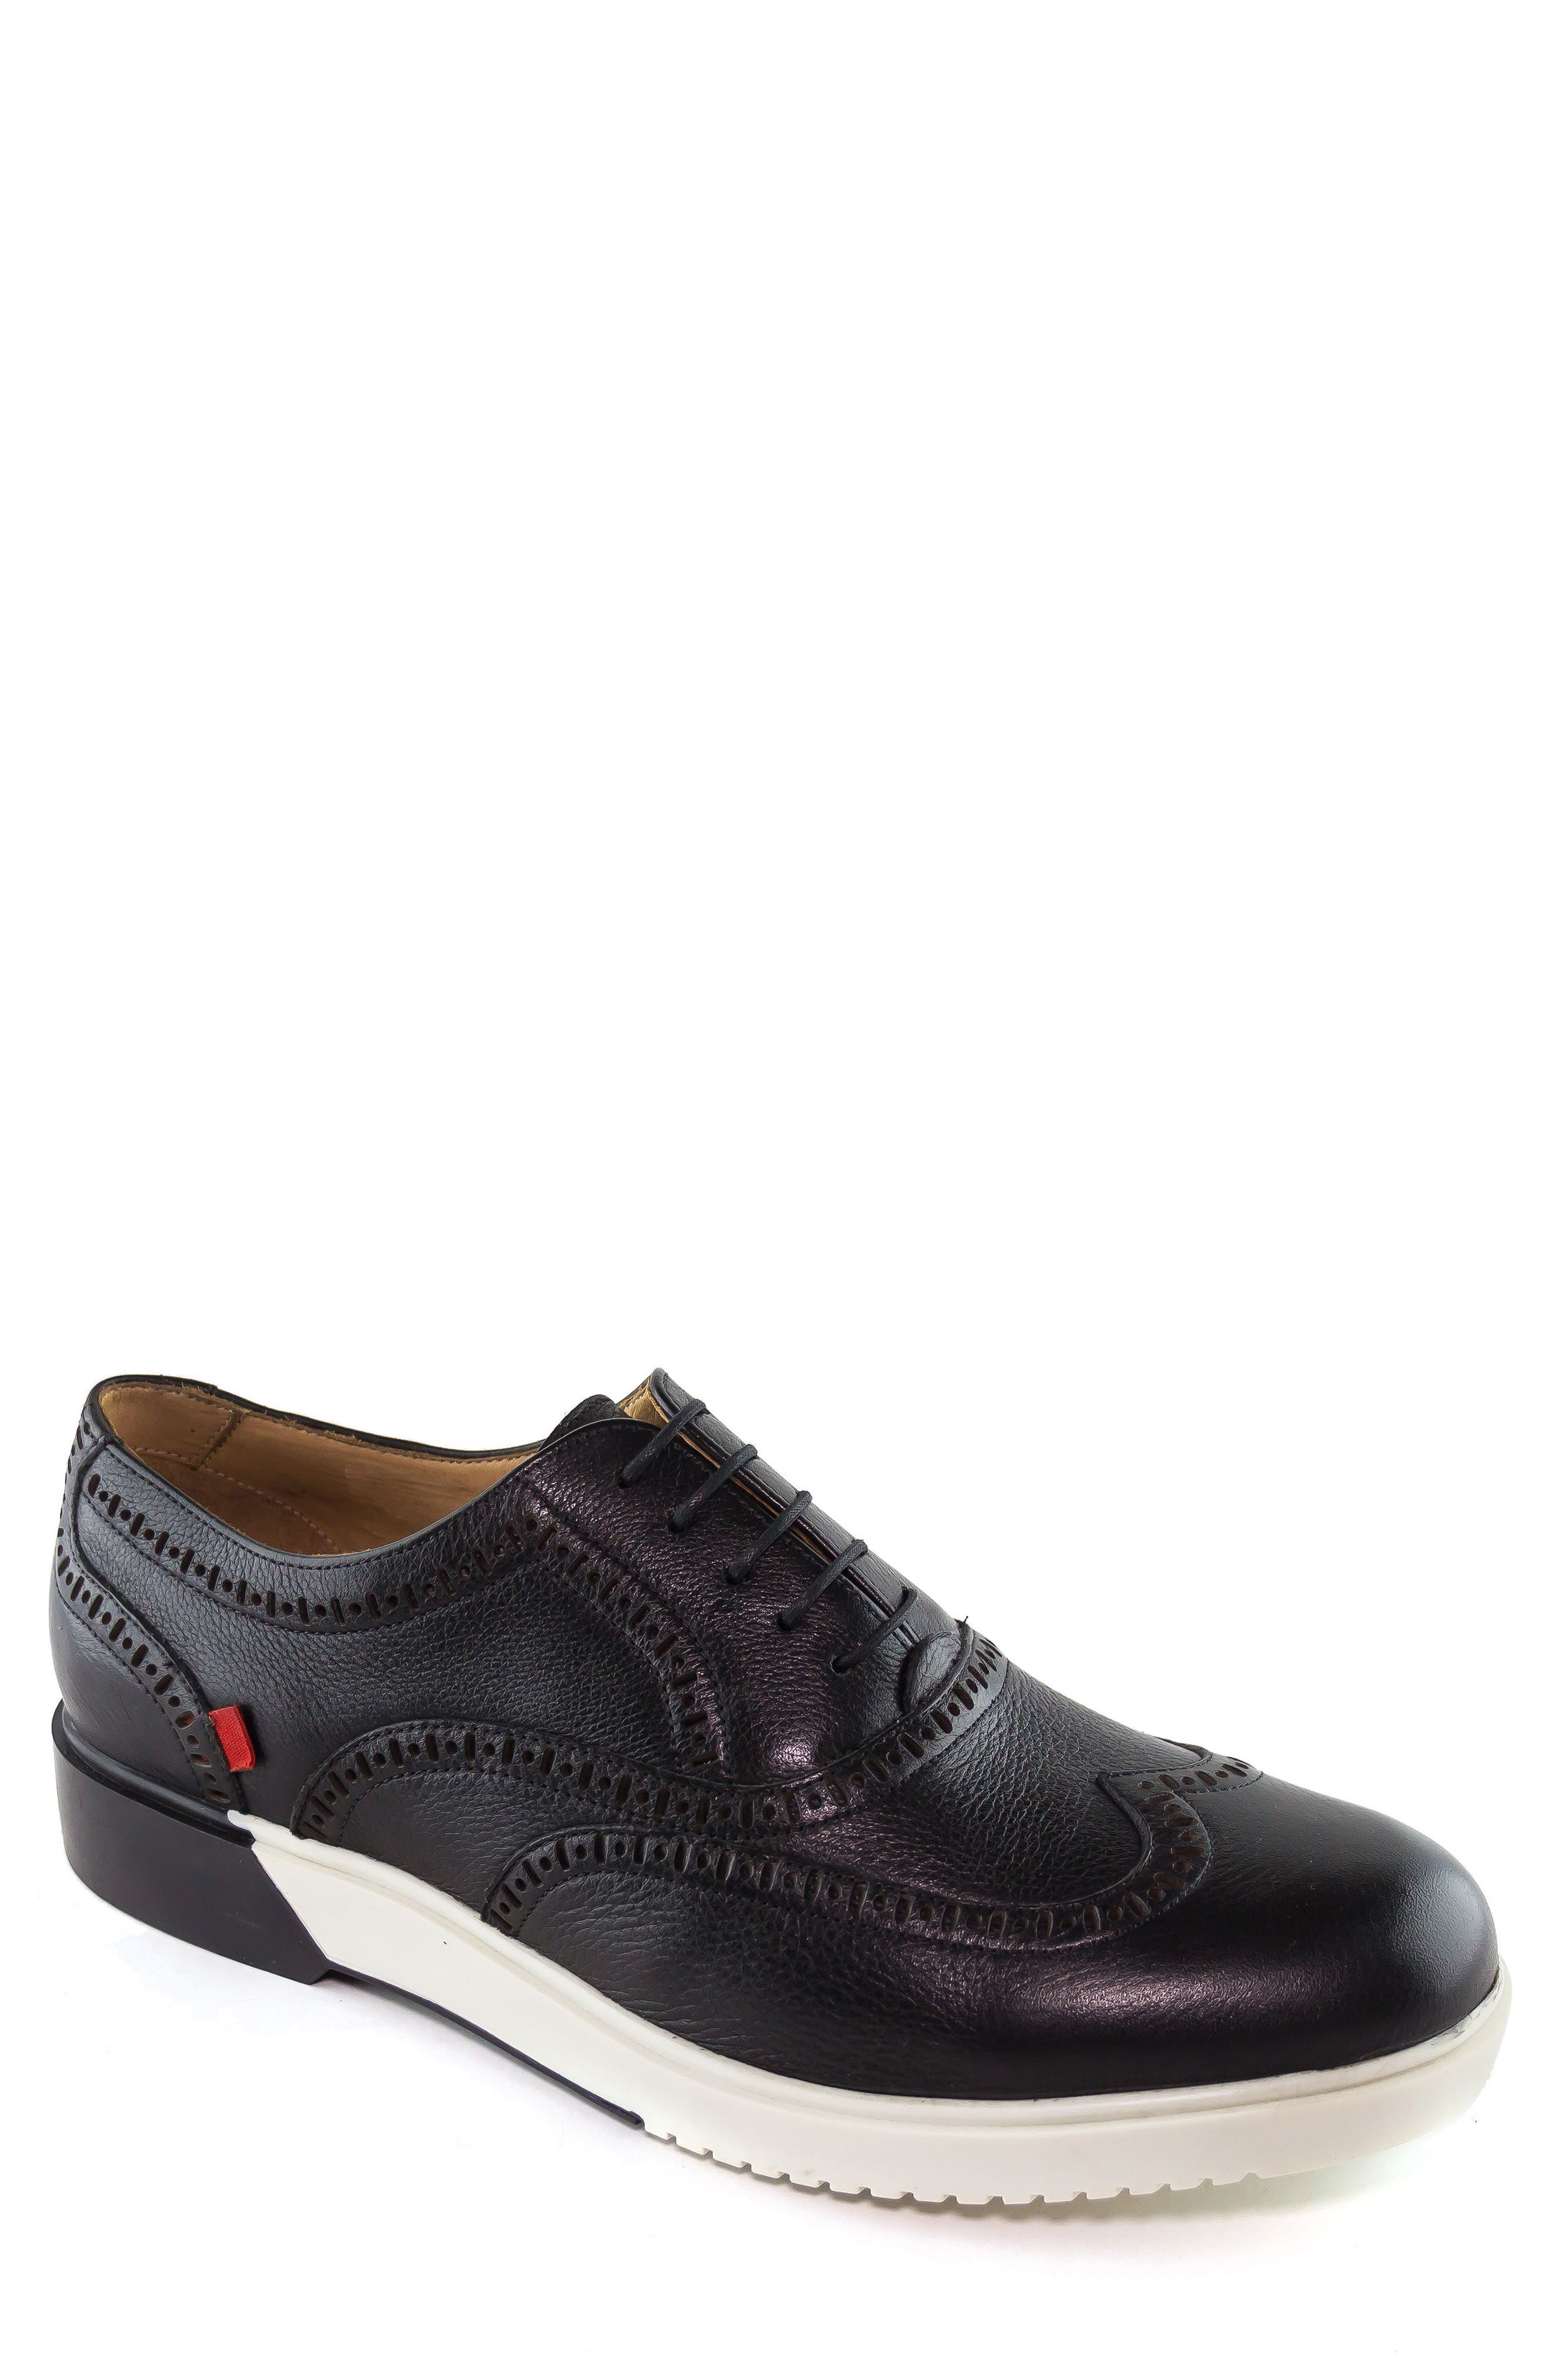 5th Ave Wingtip Sneaker,                         Main,                         color,